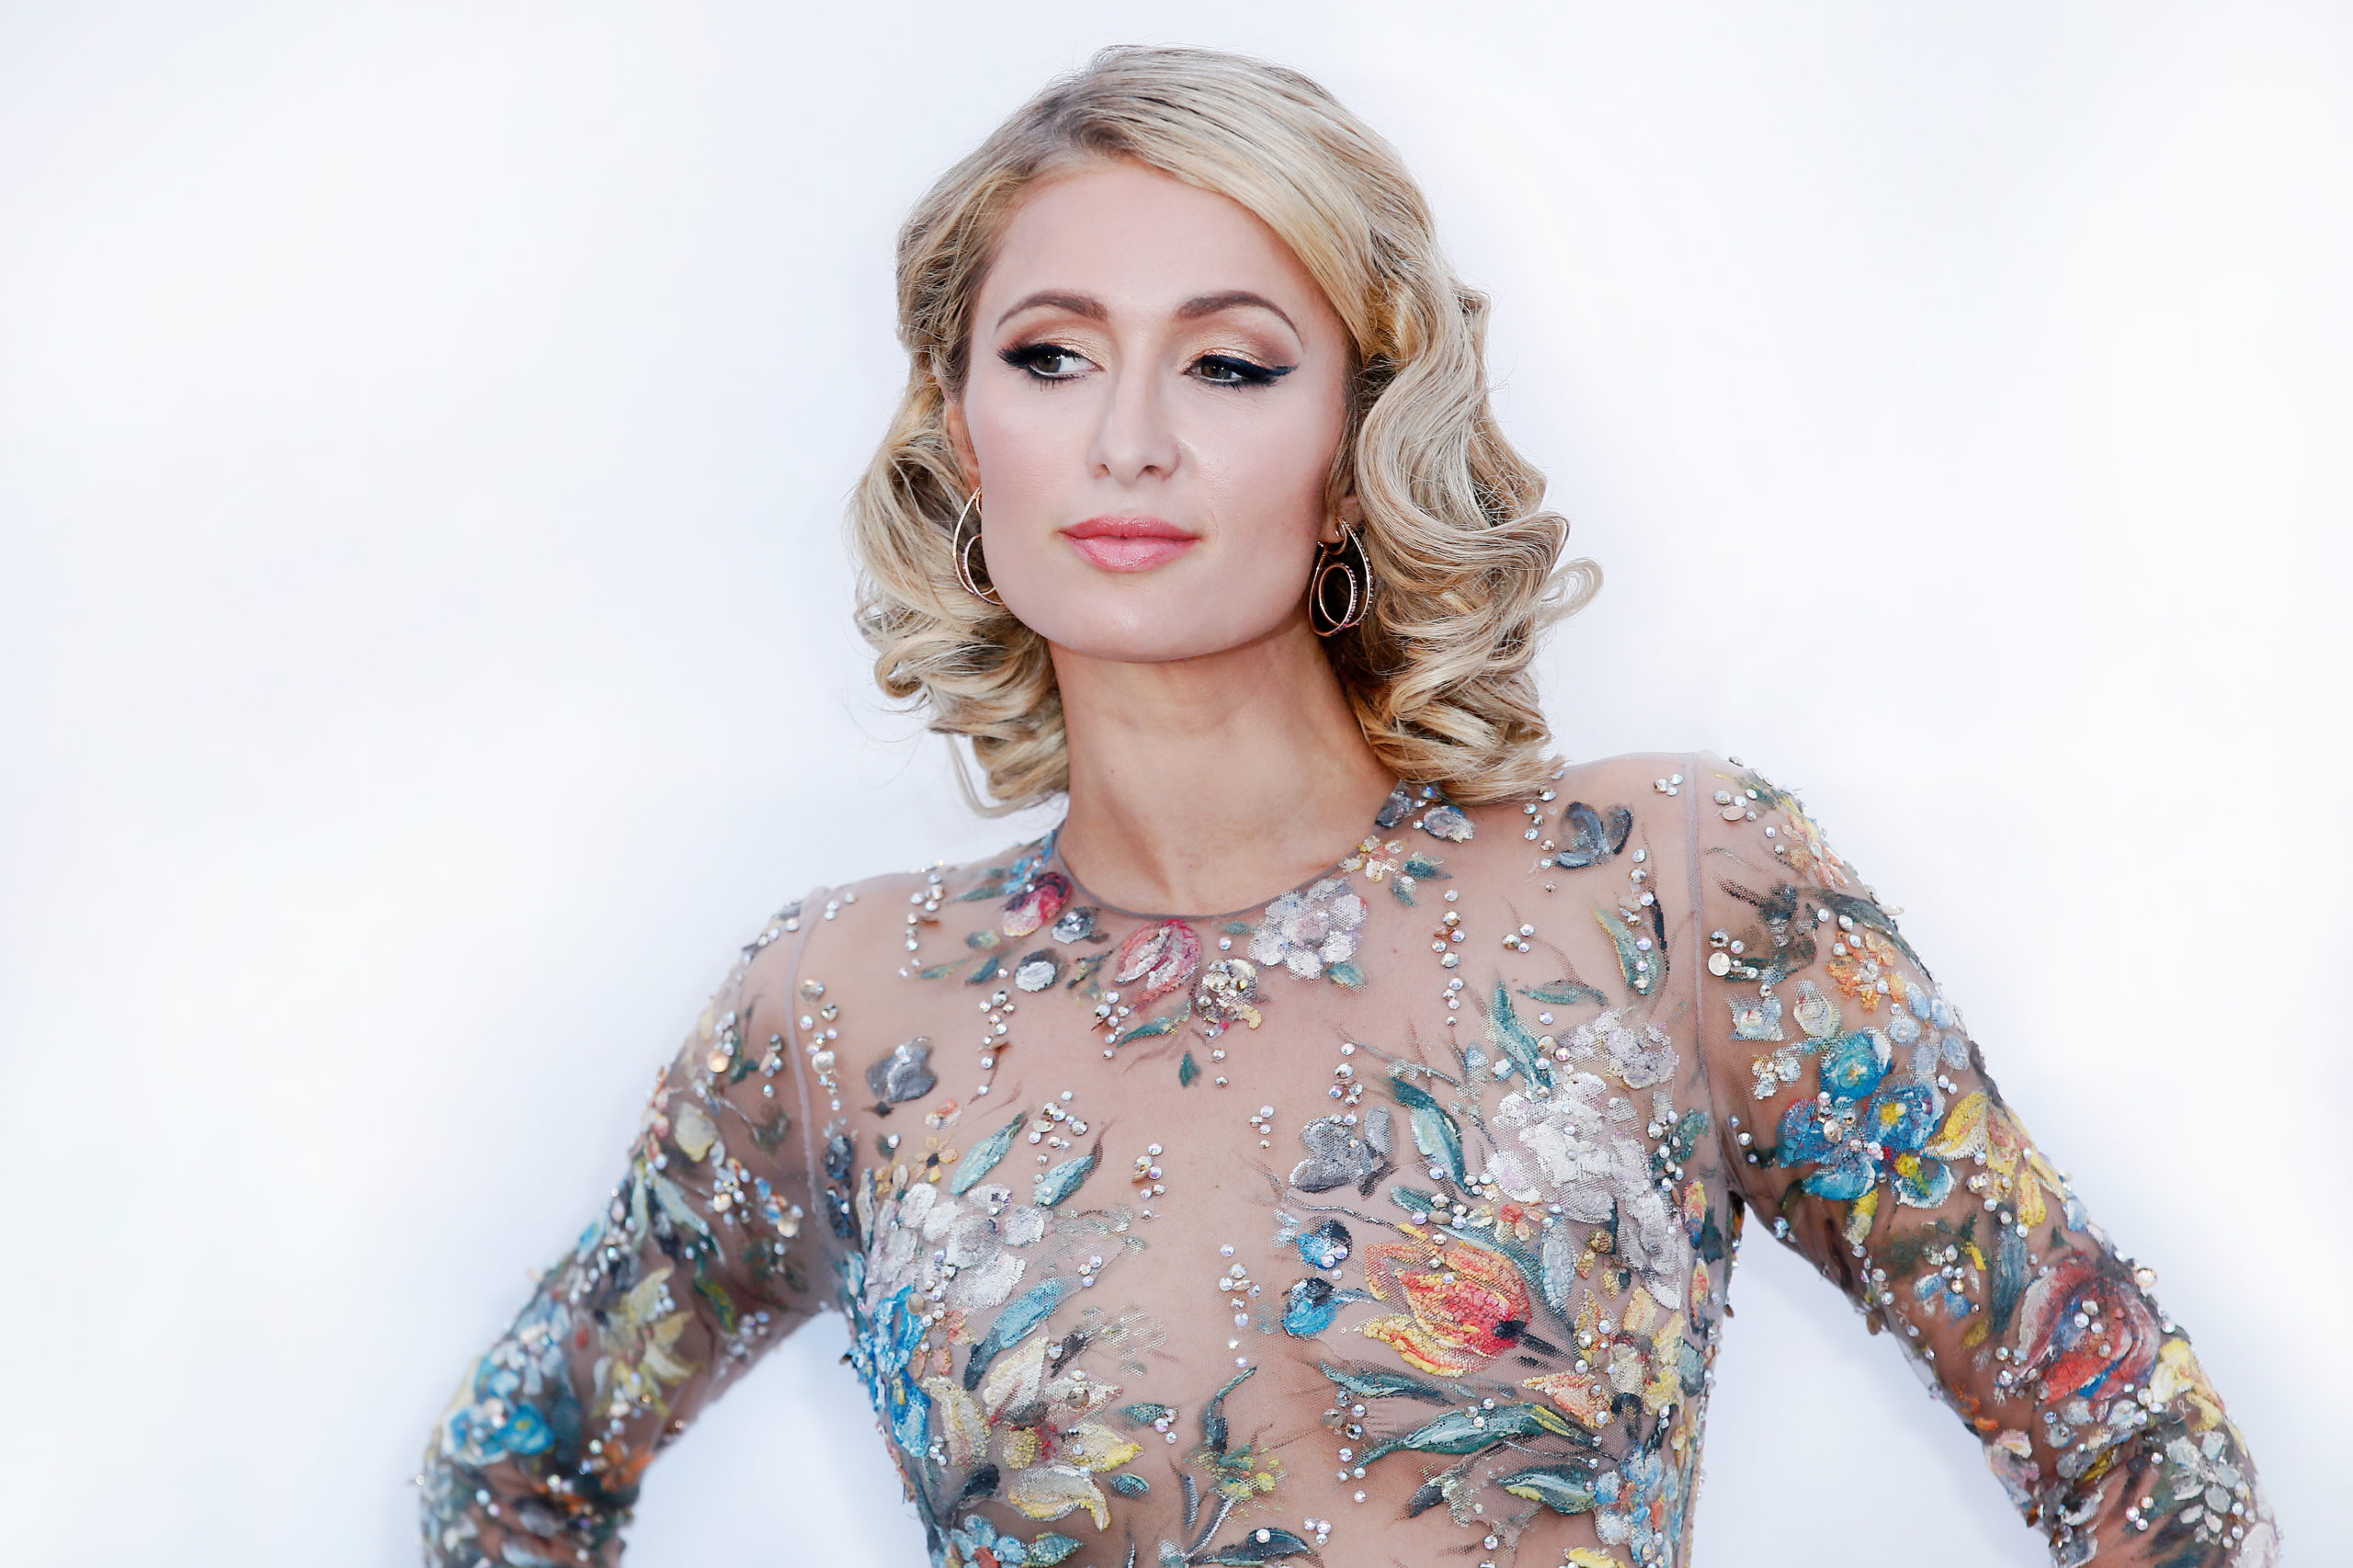 Por medio de YouTube Originals, Paris Hilton presenta This is Paris, un documental sobre su vida